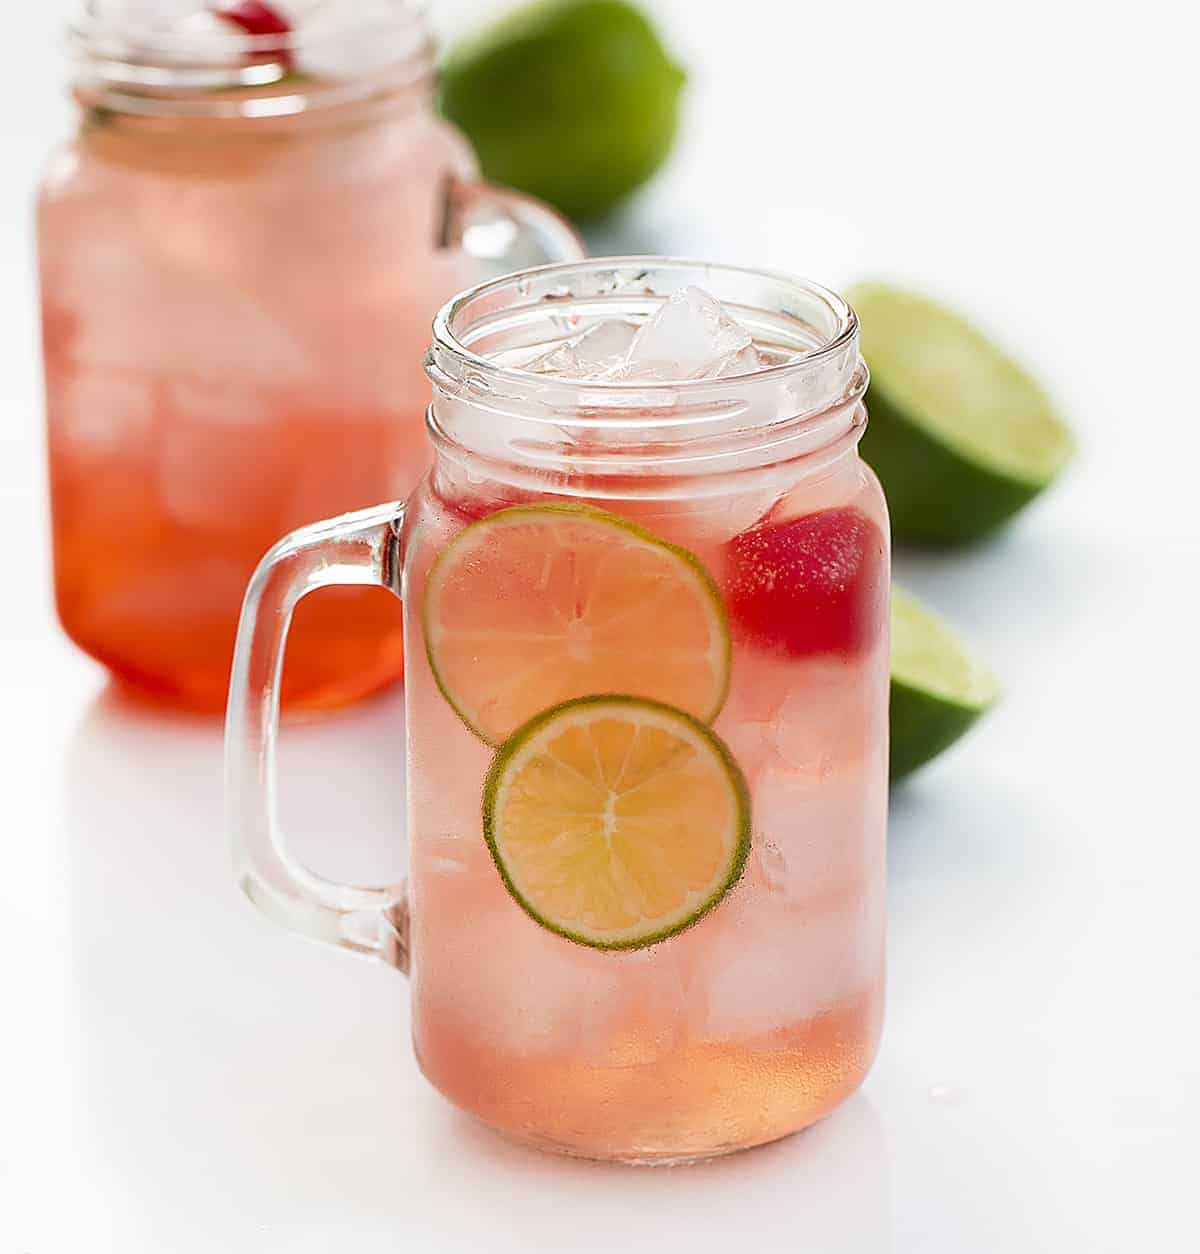 Two Glasses of Cherry Limeade Drink with Fresh Lime